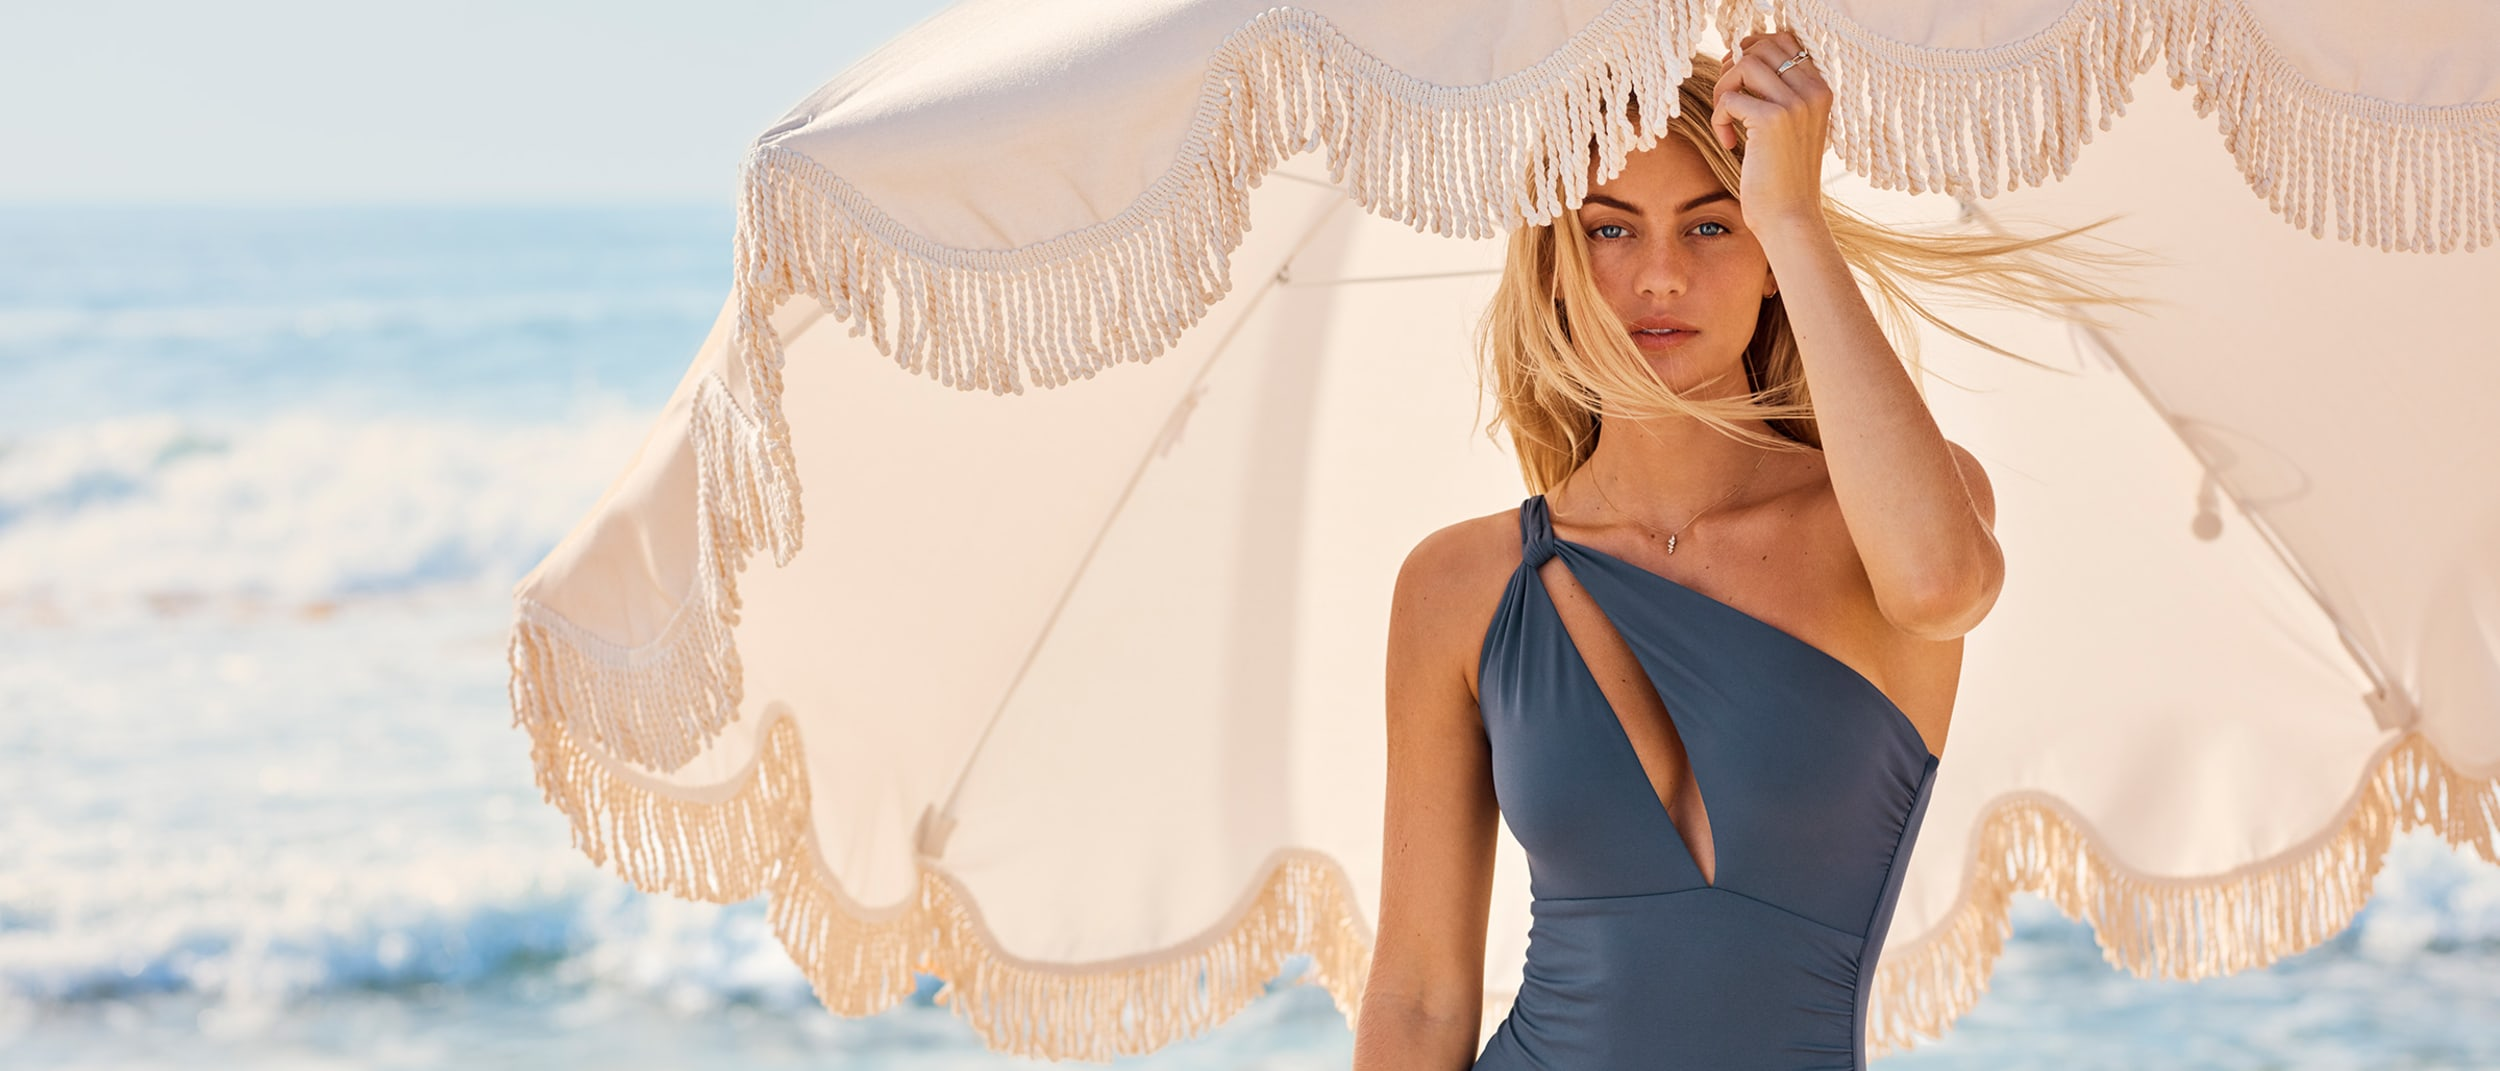 Seafolly's new granite collection